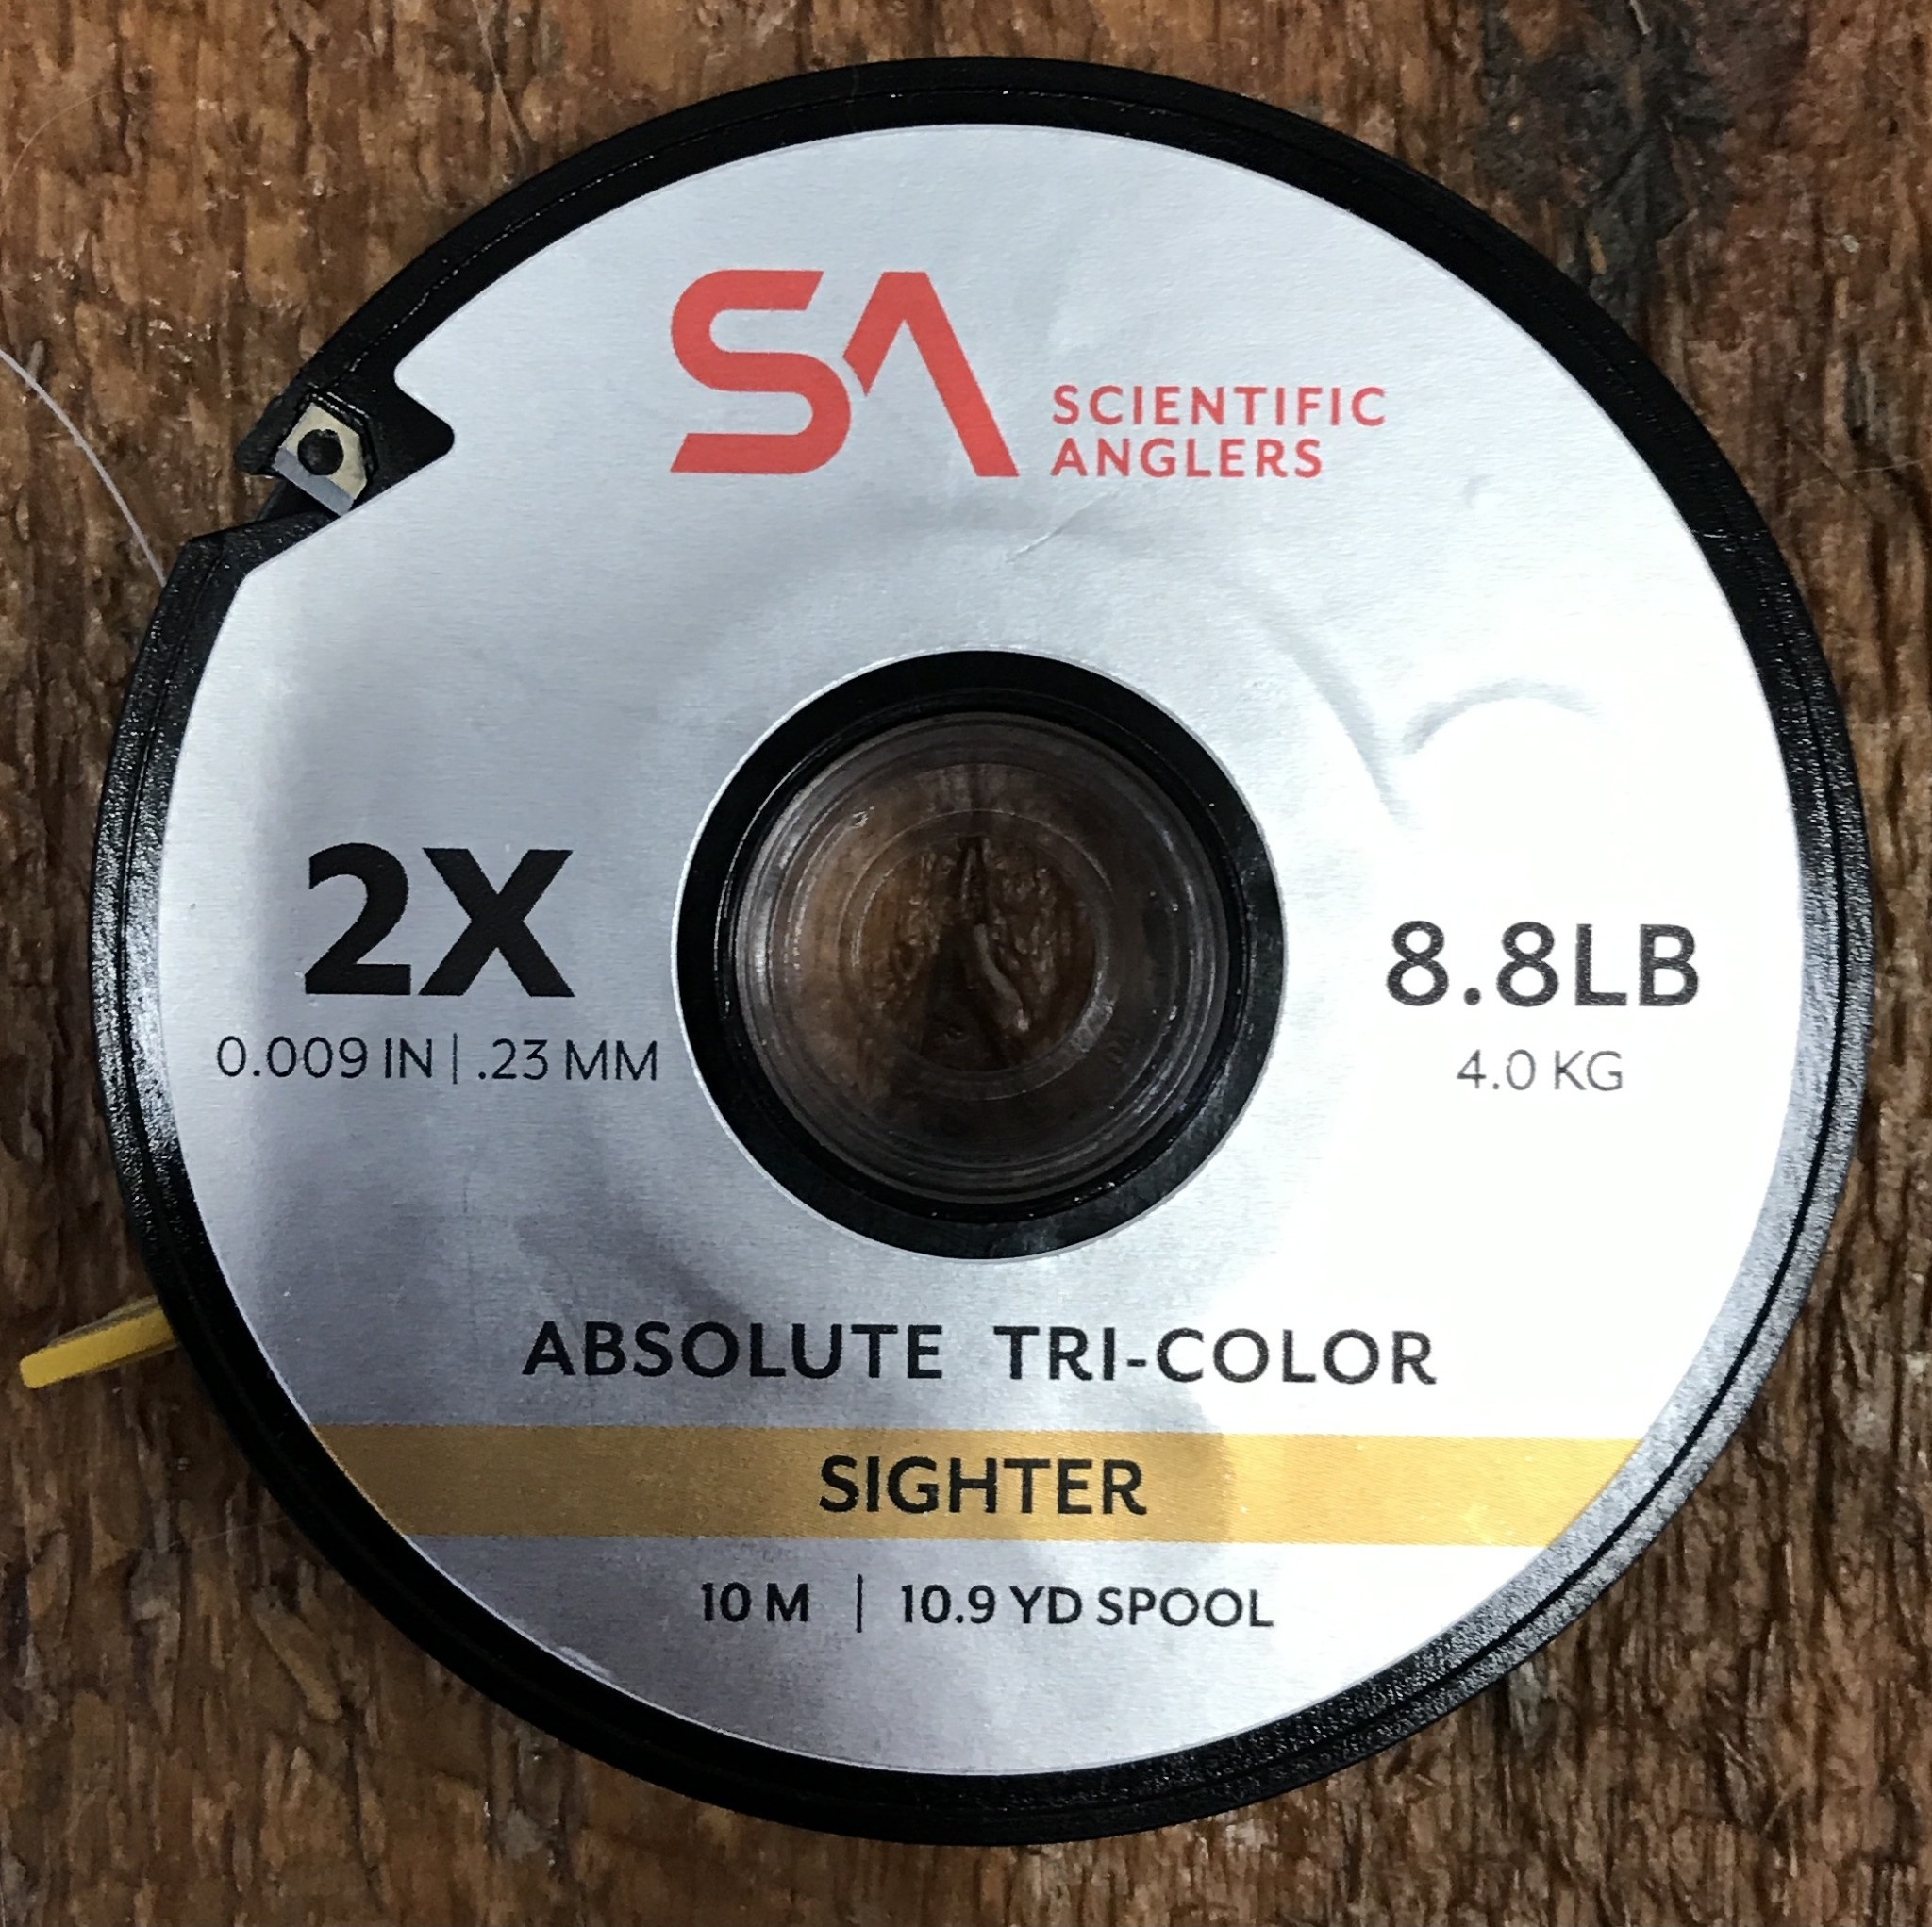 Scientific Anglers Absolute Tri-Color Sighter 10m Spool 2X